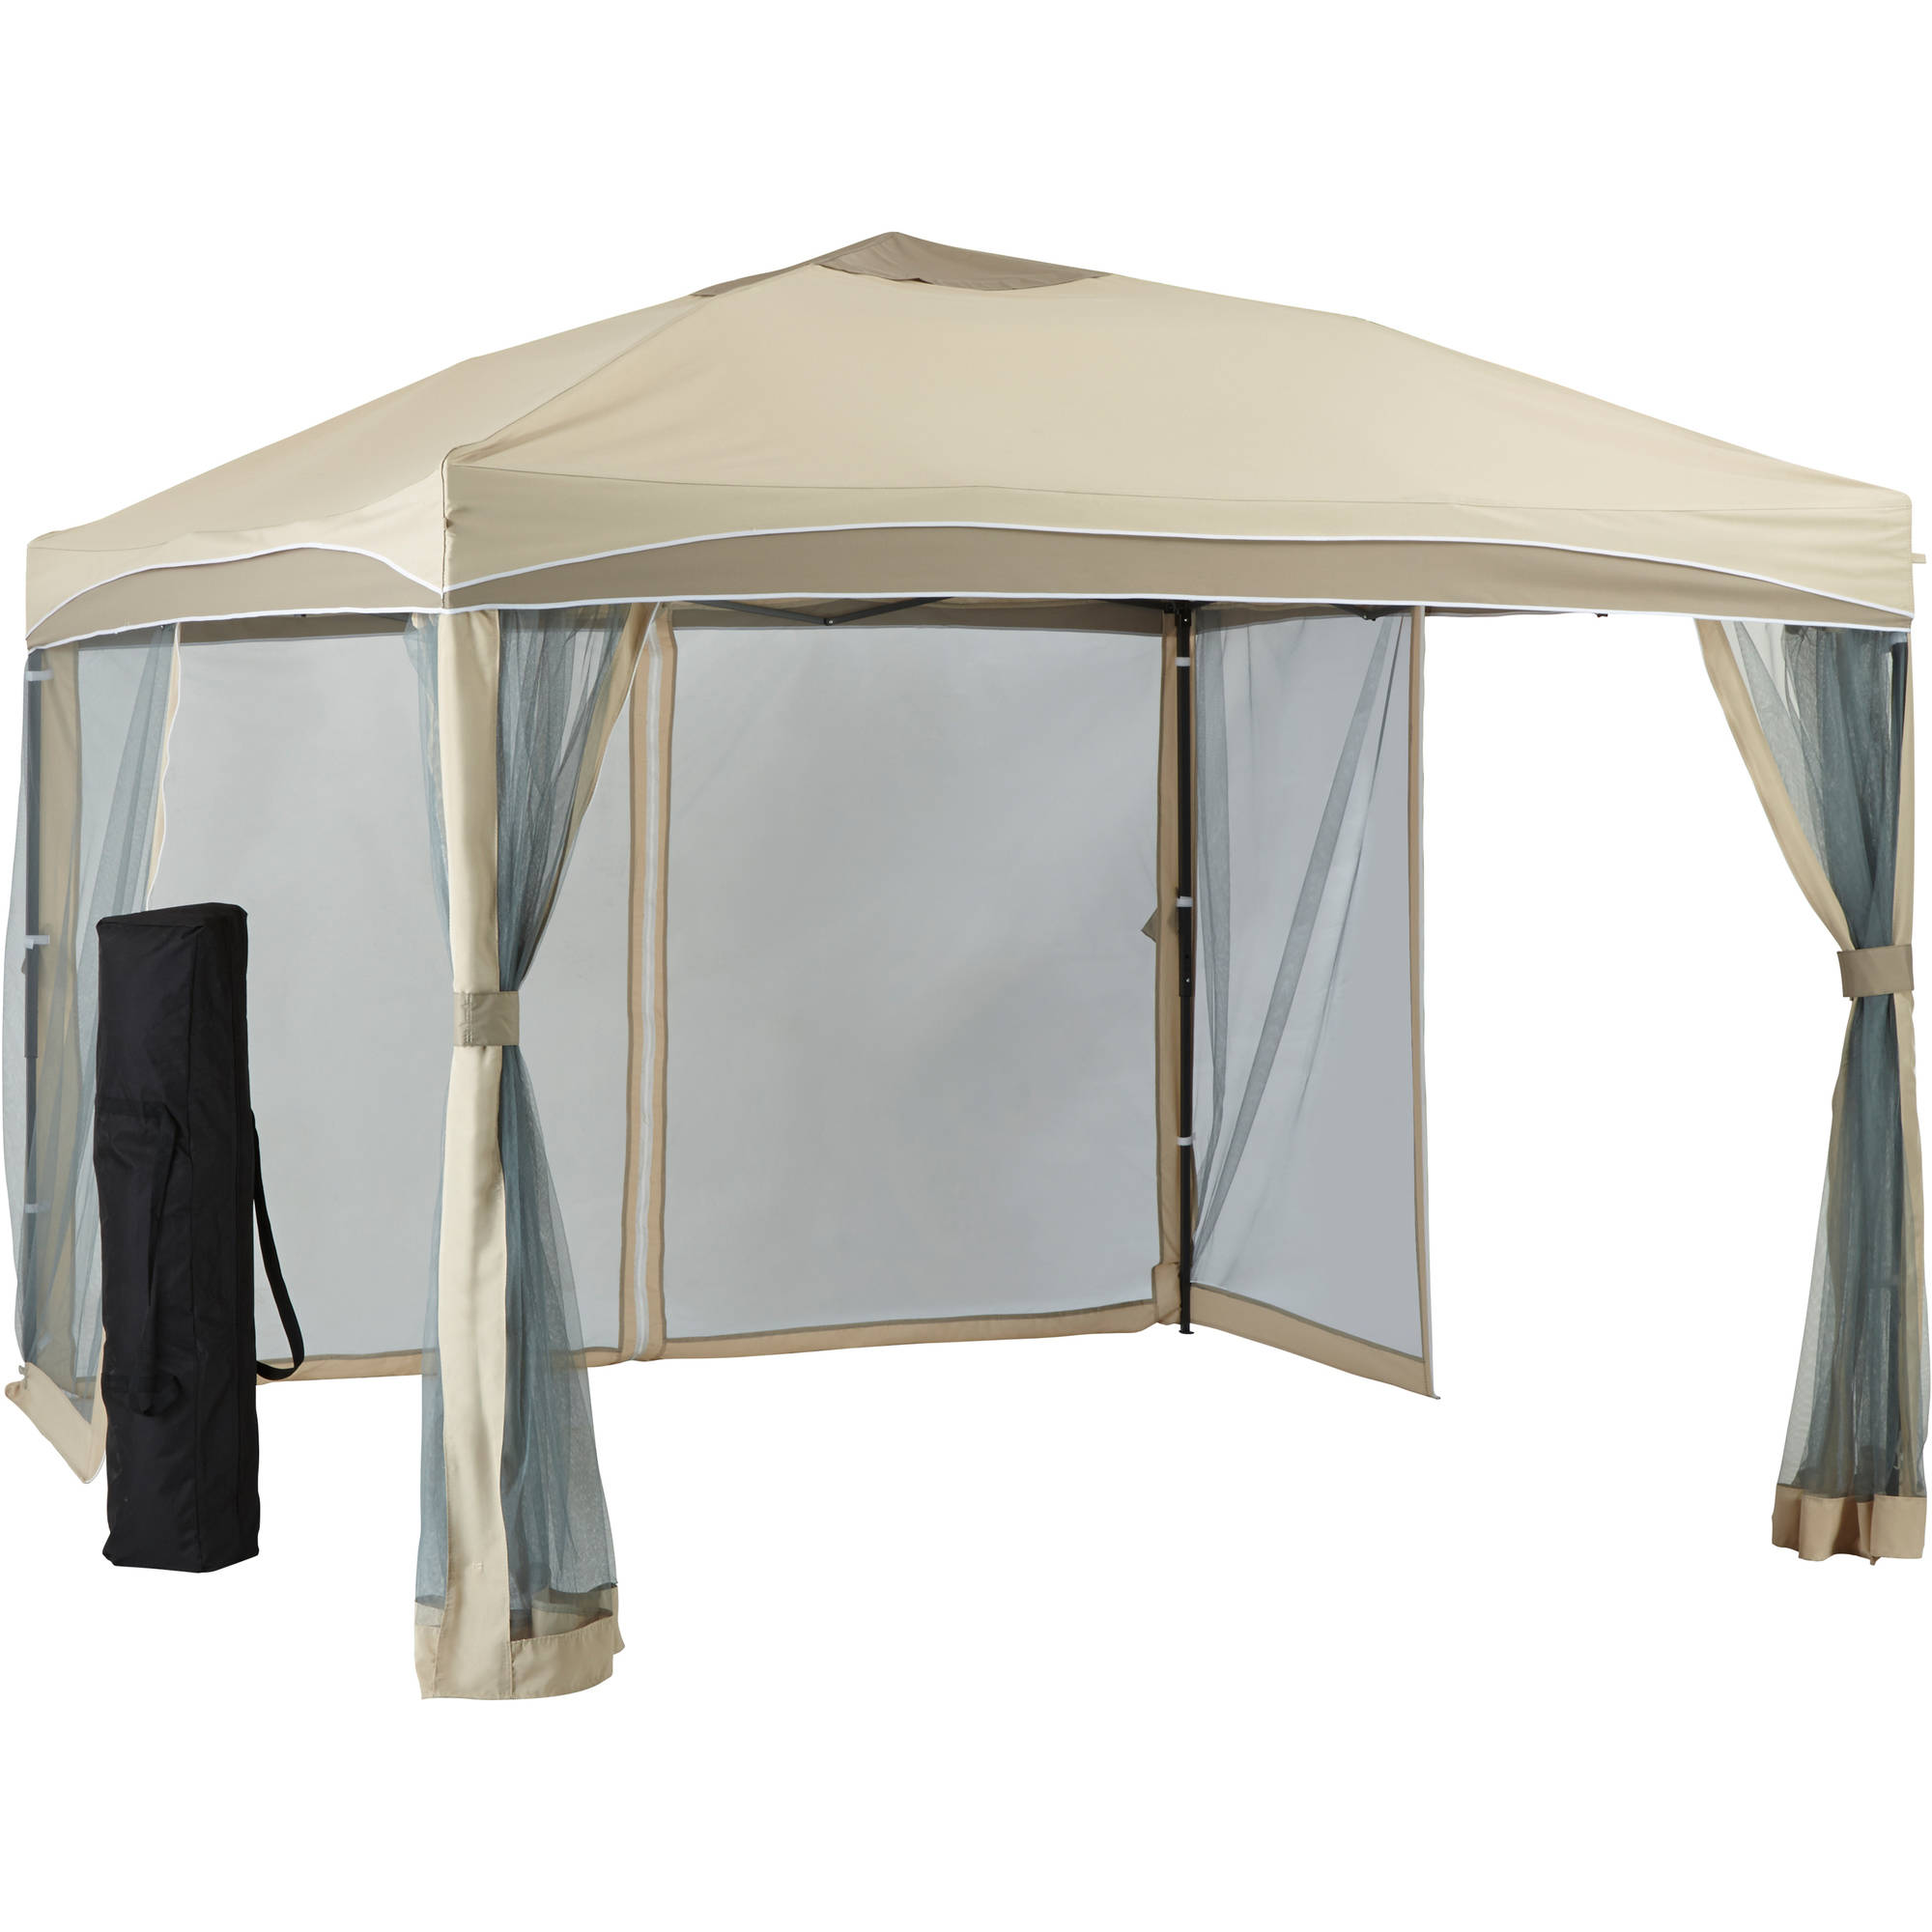 Better homes and gardens gazebo plans house design plans Better homes and gardens gazebo